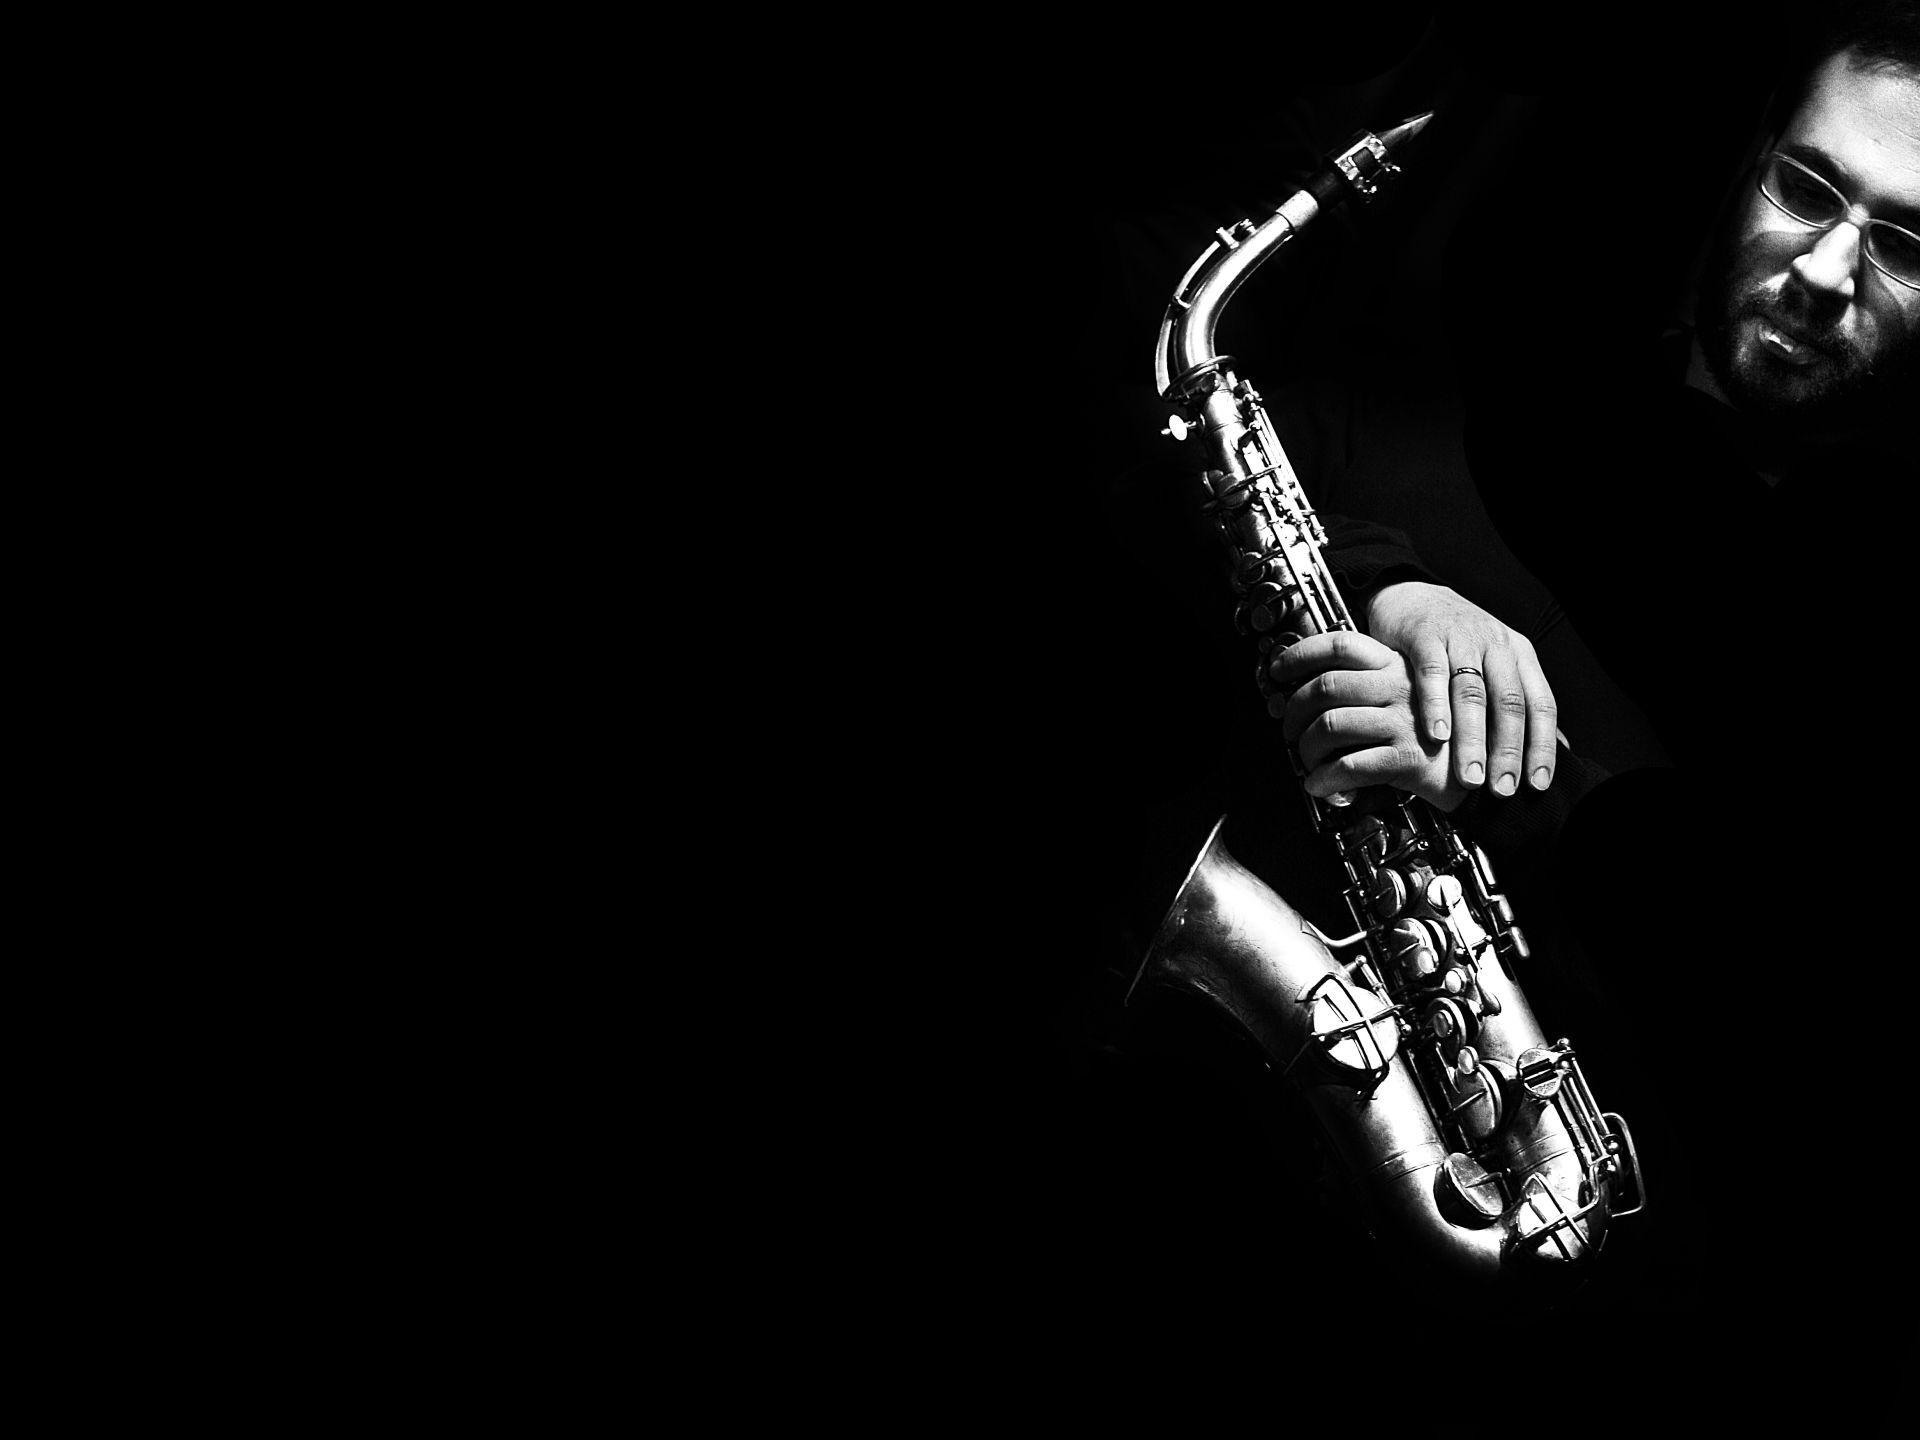 Jazz Music Wallpapers Hd Cool 7 HD Wallpapers | aladdino.